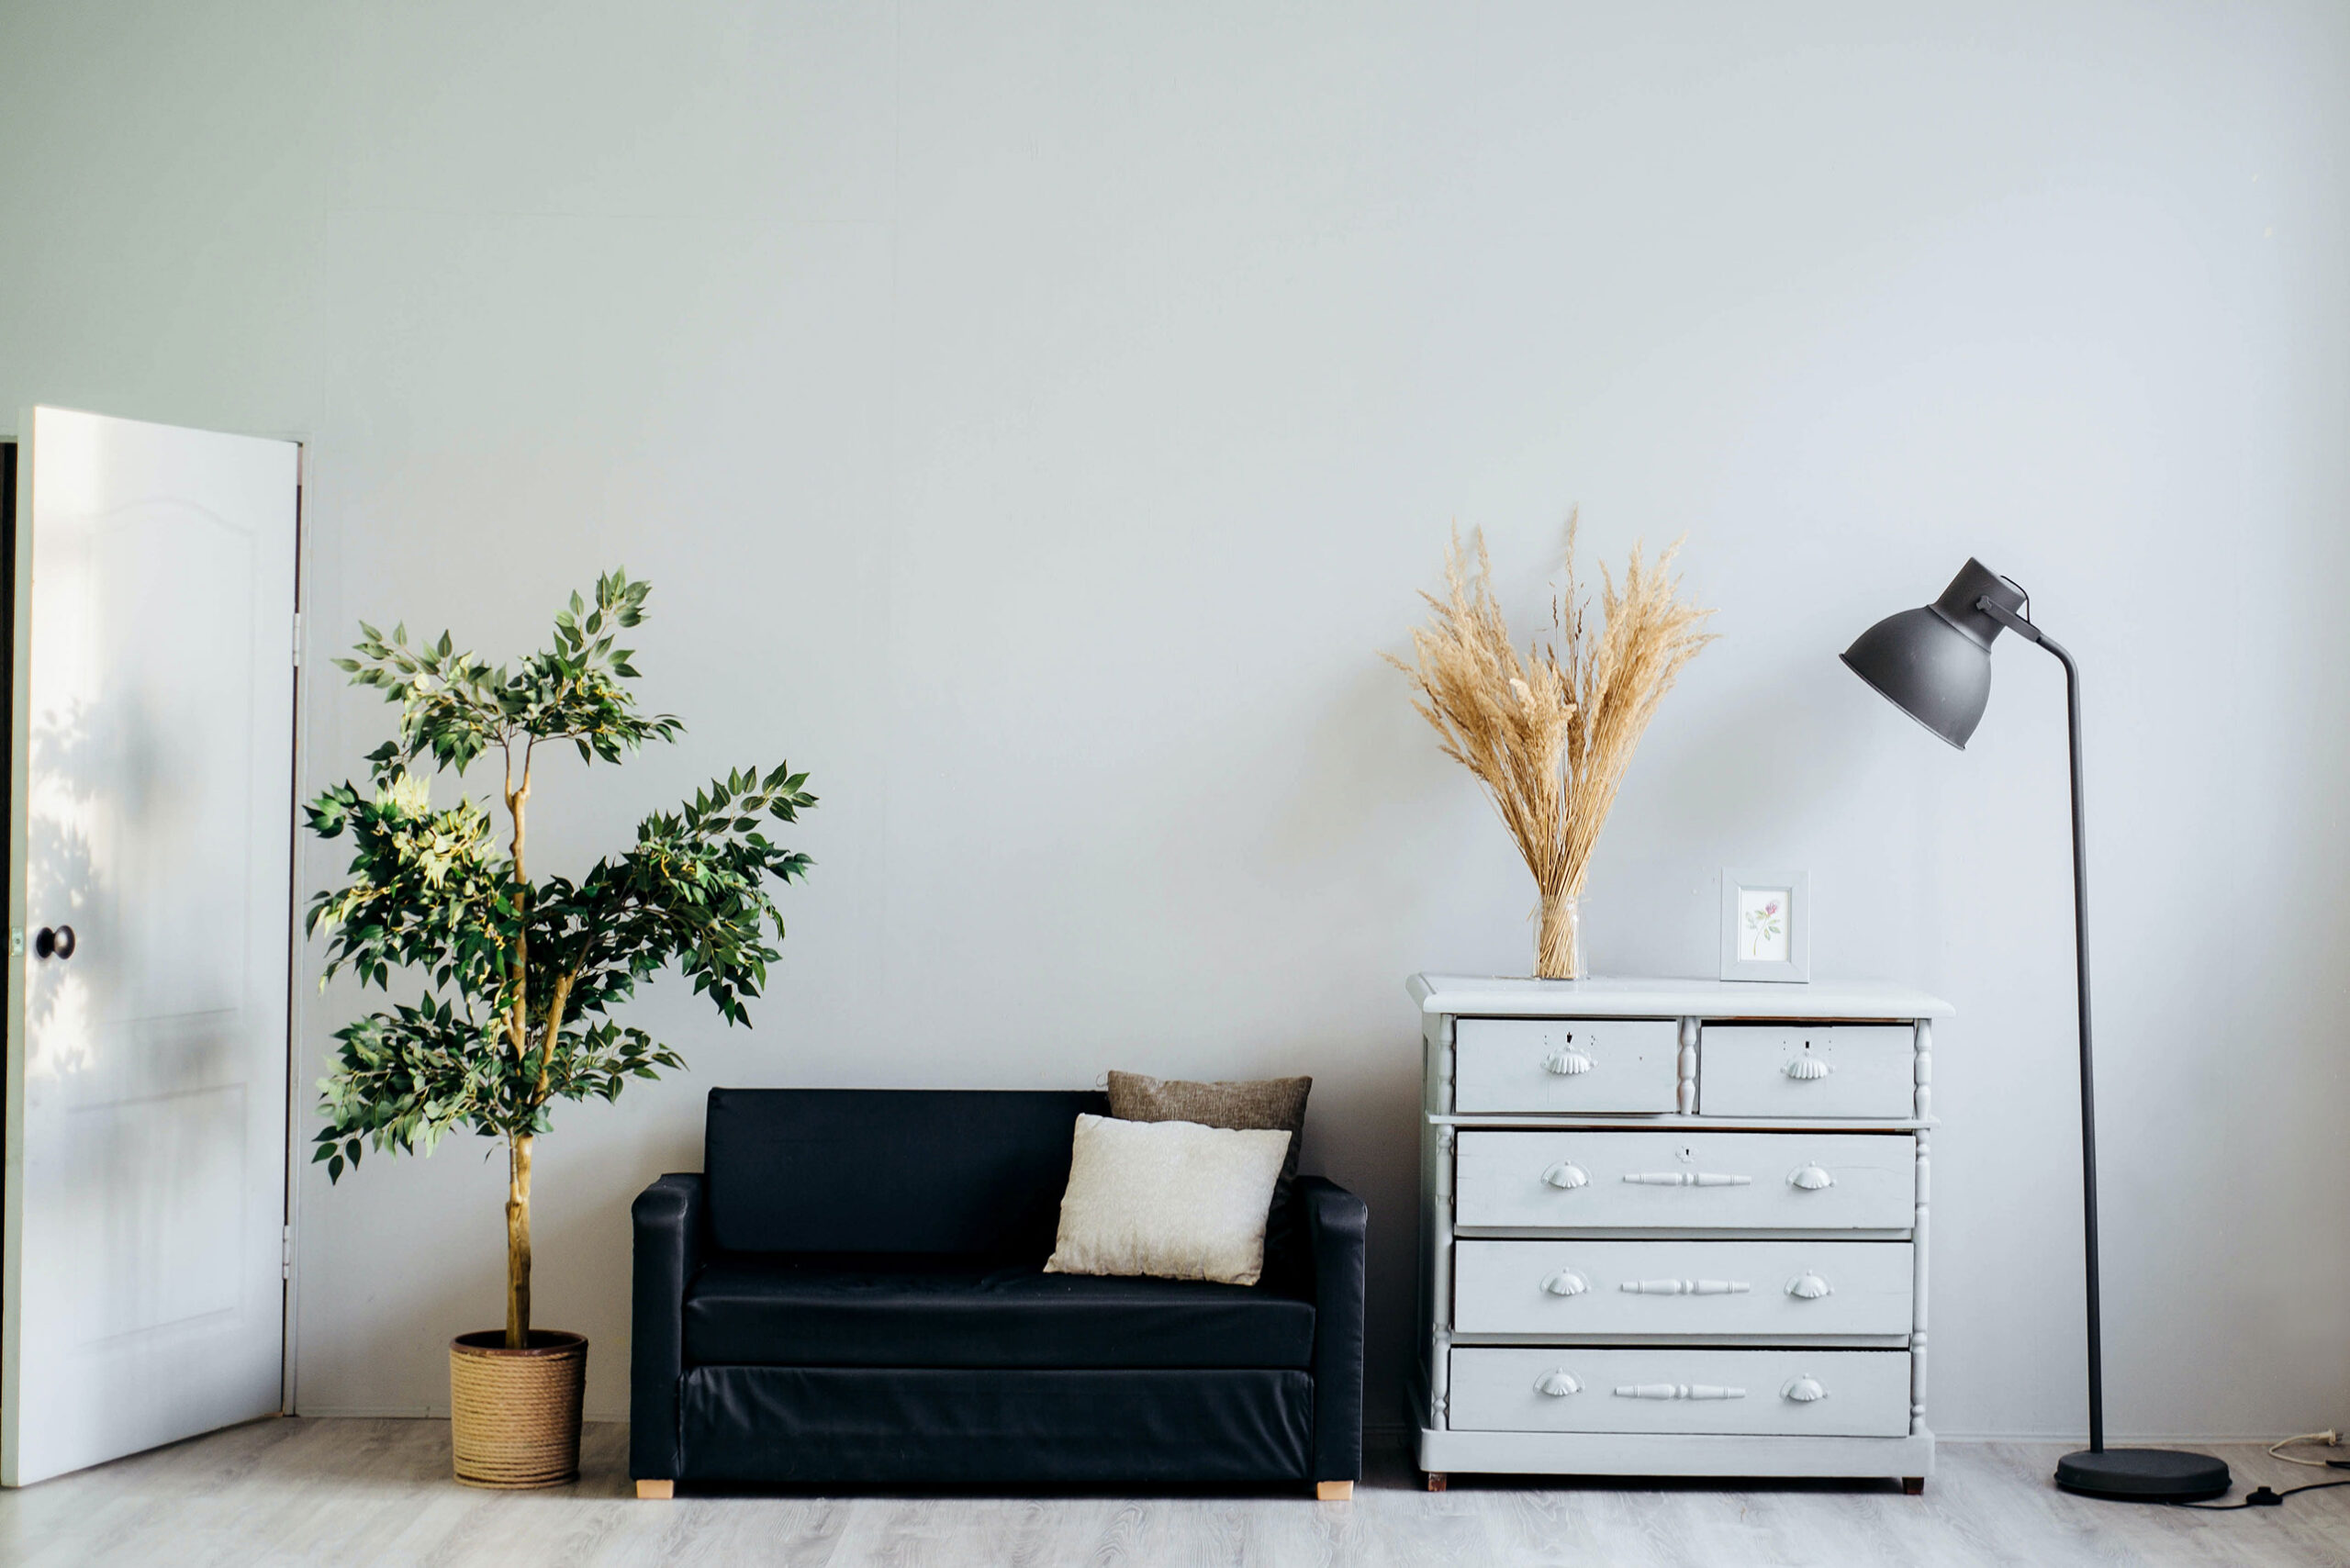 6 Best Ways To Get Rid Of Furniture In Hong Kong